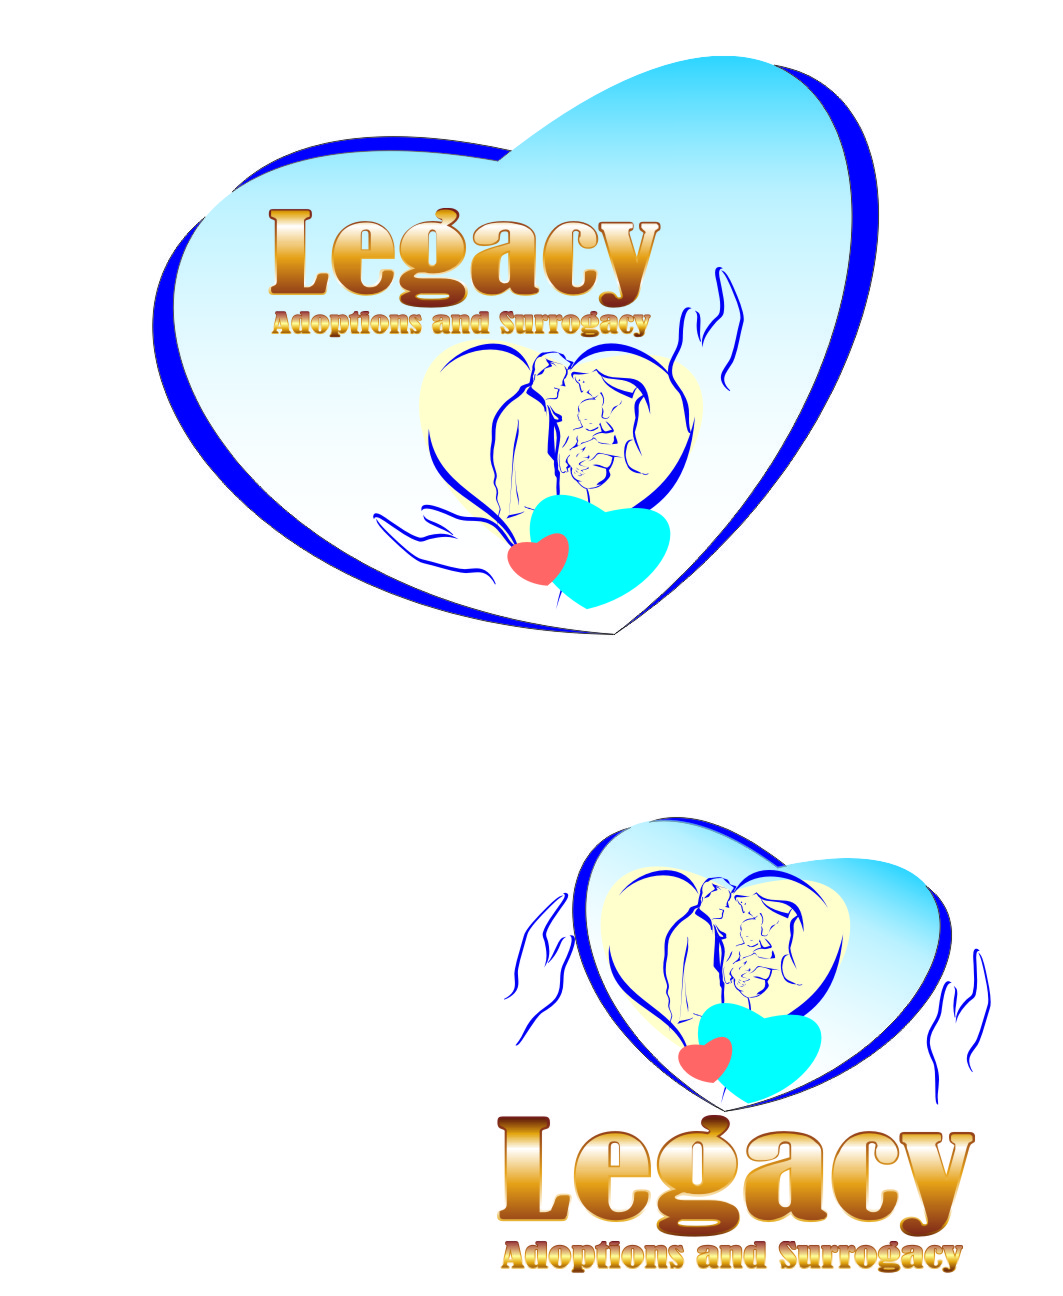 Logo Design by Private User - Entry No. 136 in the Logo Design Contest Legacy Adoptions and Surrogacy Logo Design.